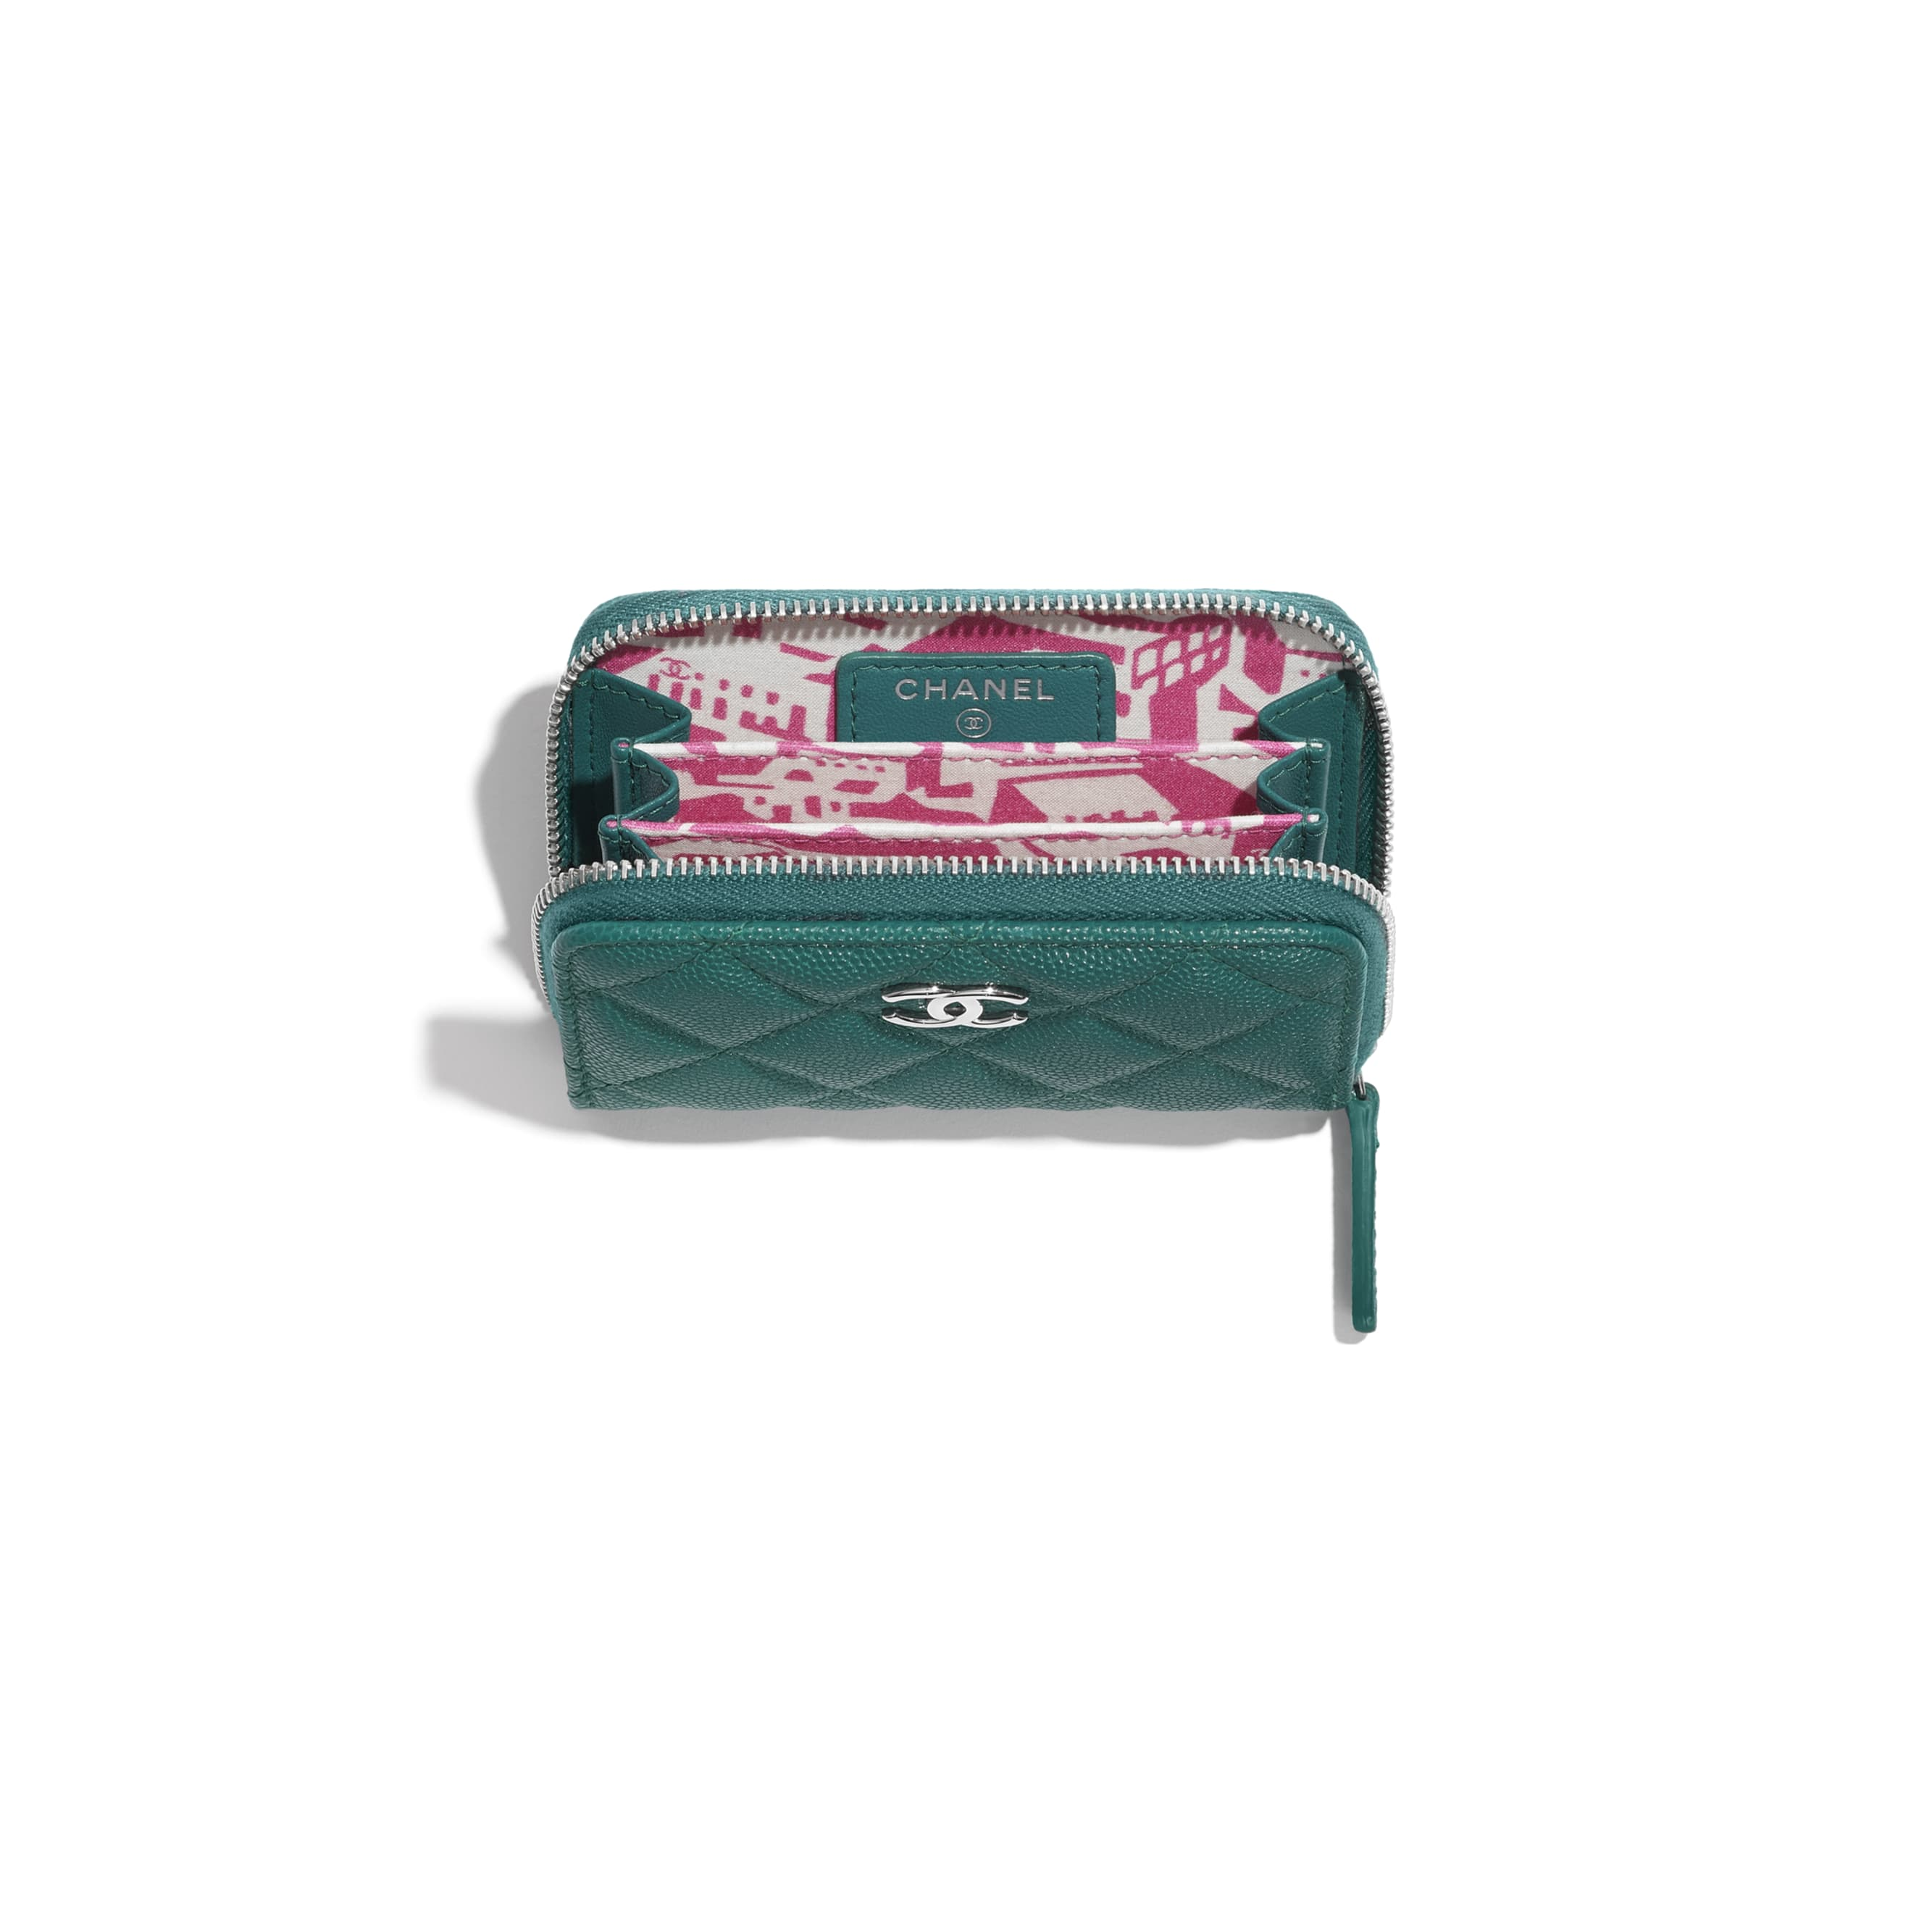 Zipped Coin Purse - Green & Pink - Grained Calfskin, Fabric & Silver-Tone Metal - CHANEL - Other view - see standard sized version